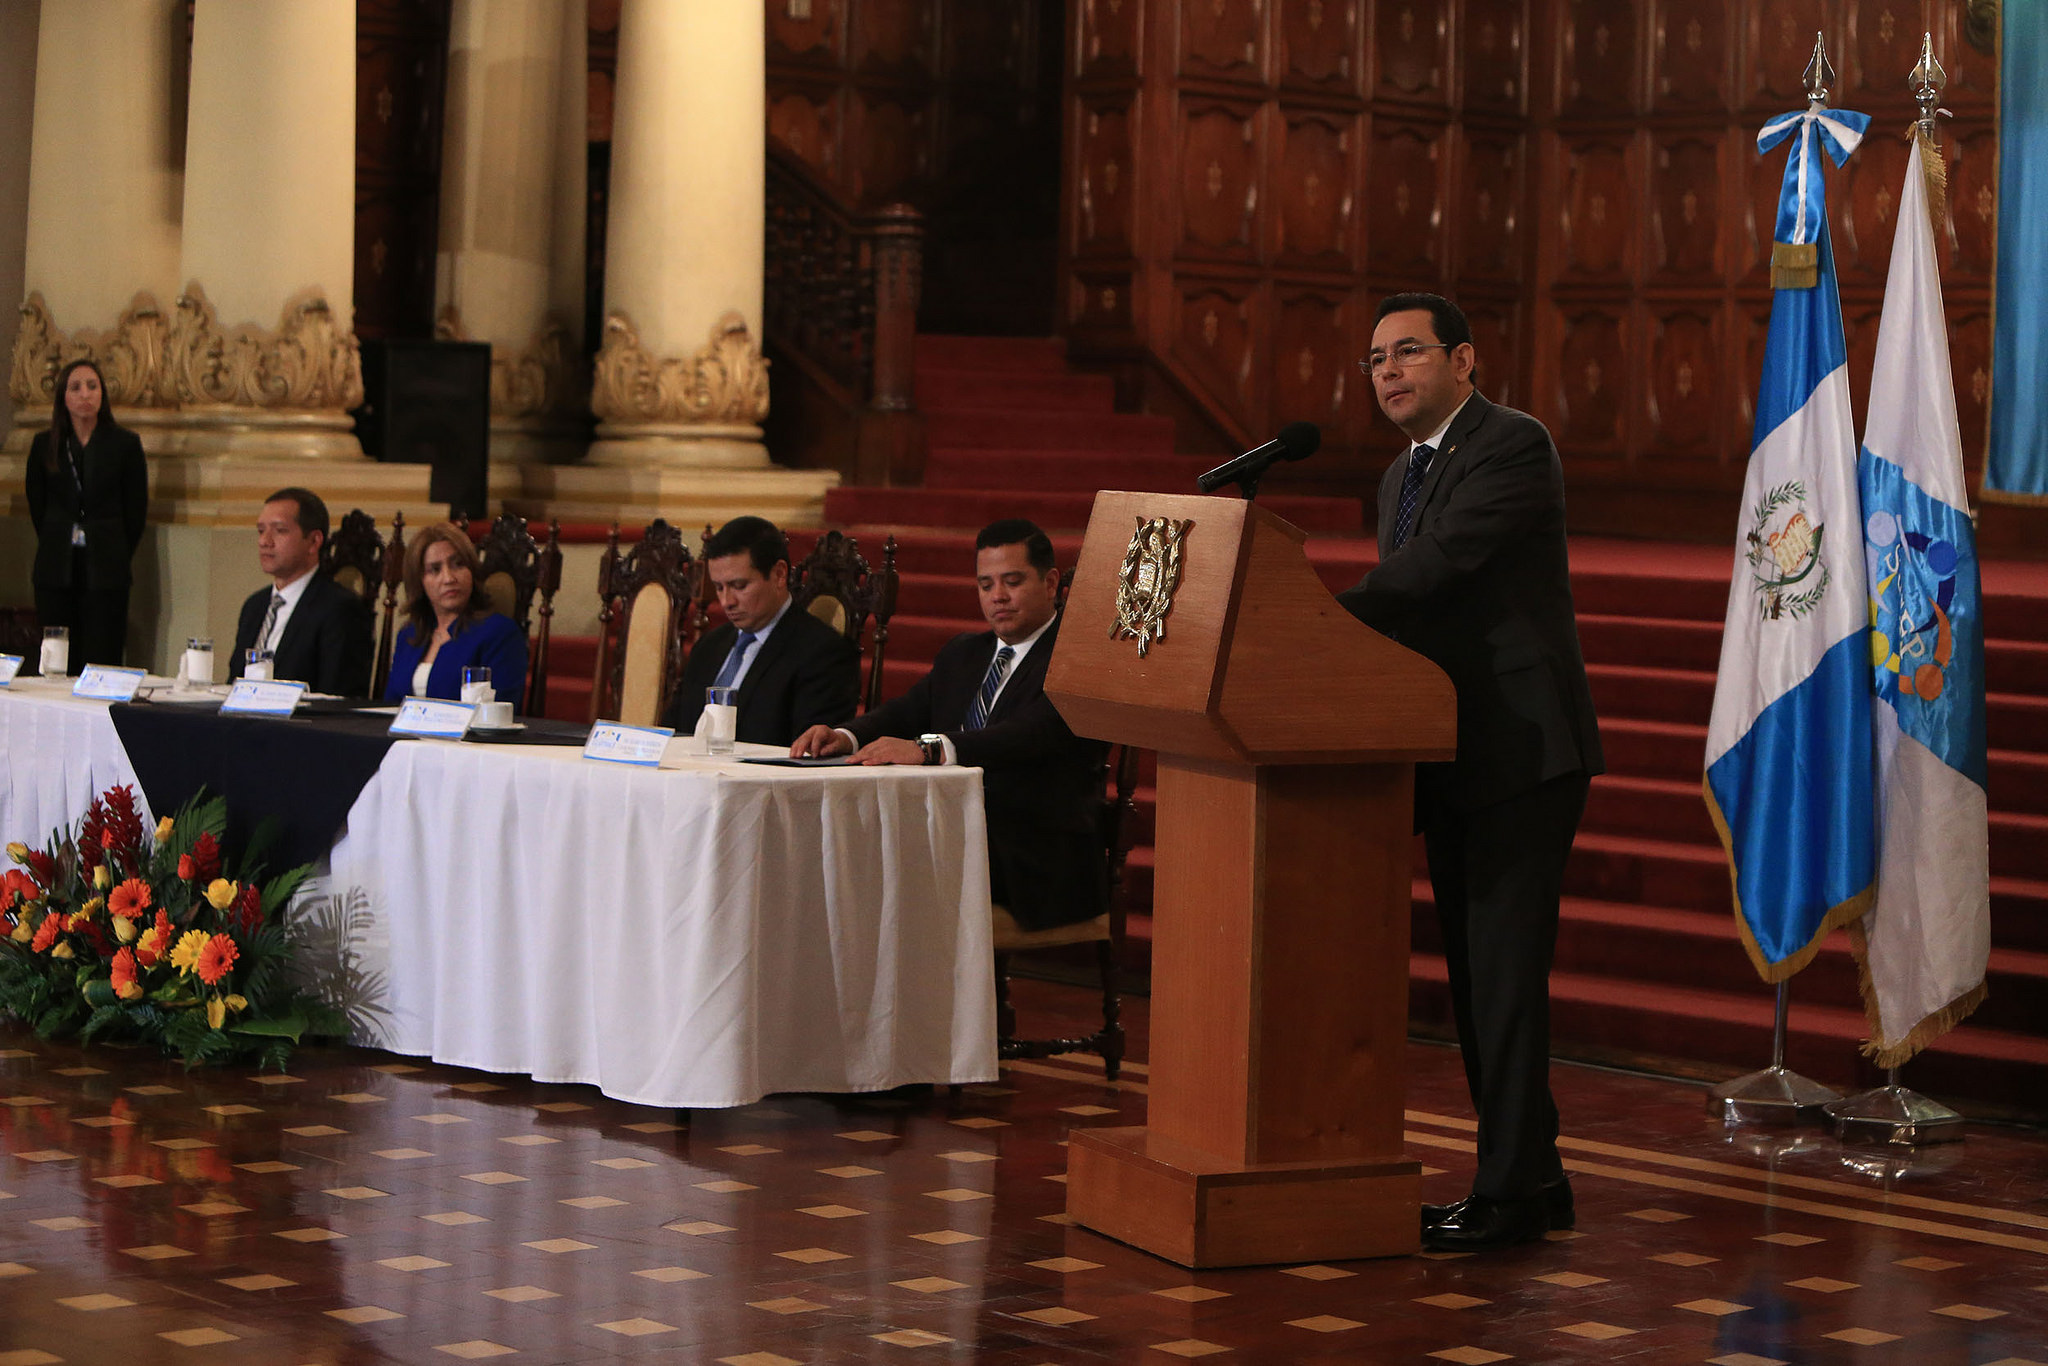 La traición de Jimmy Morales a los migrantes que lo financiaron